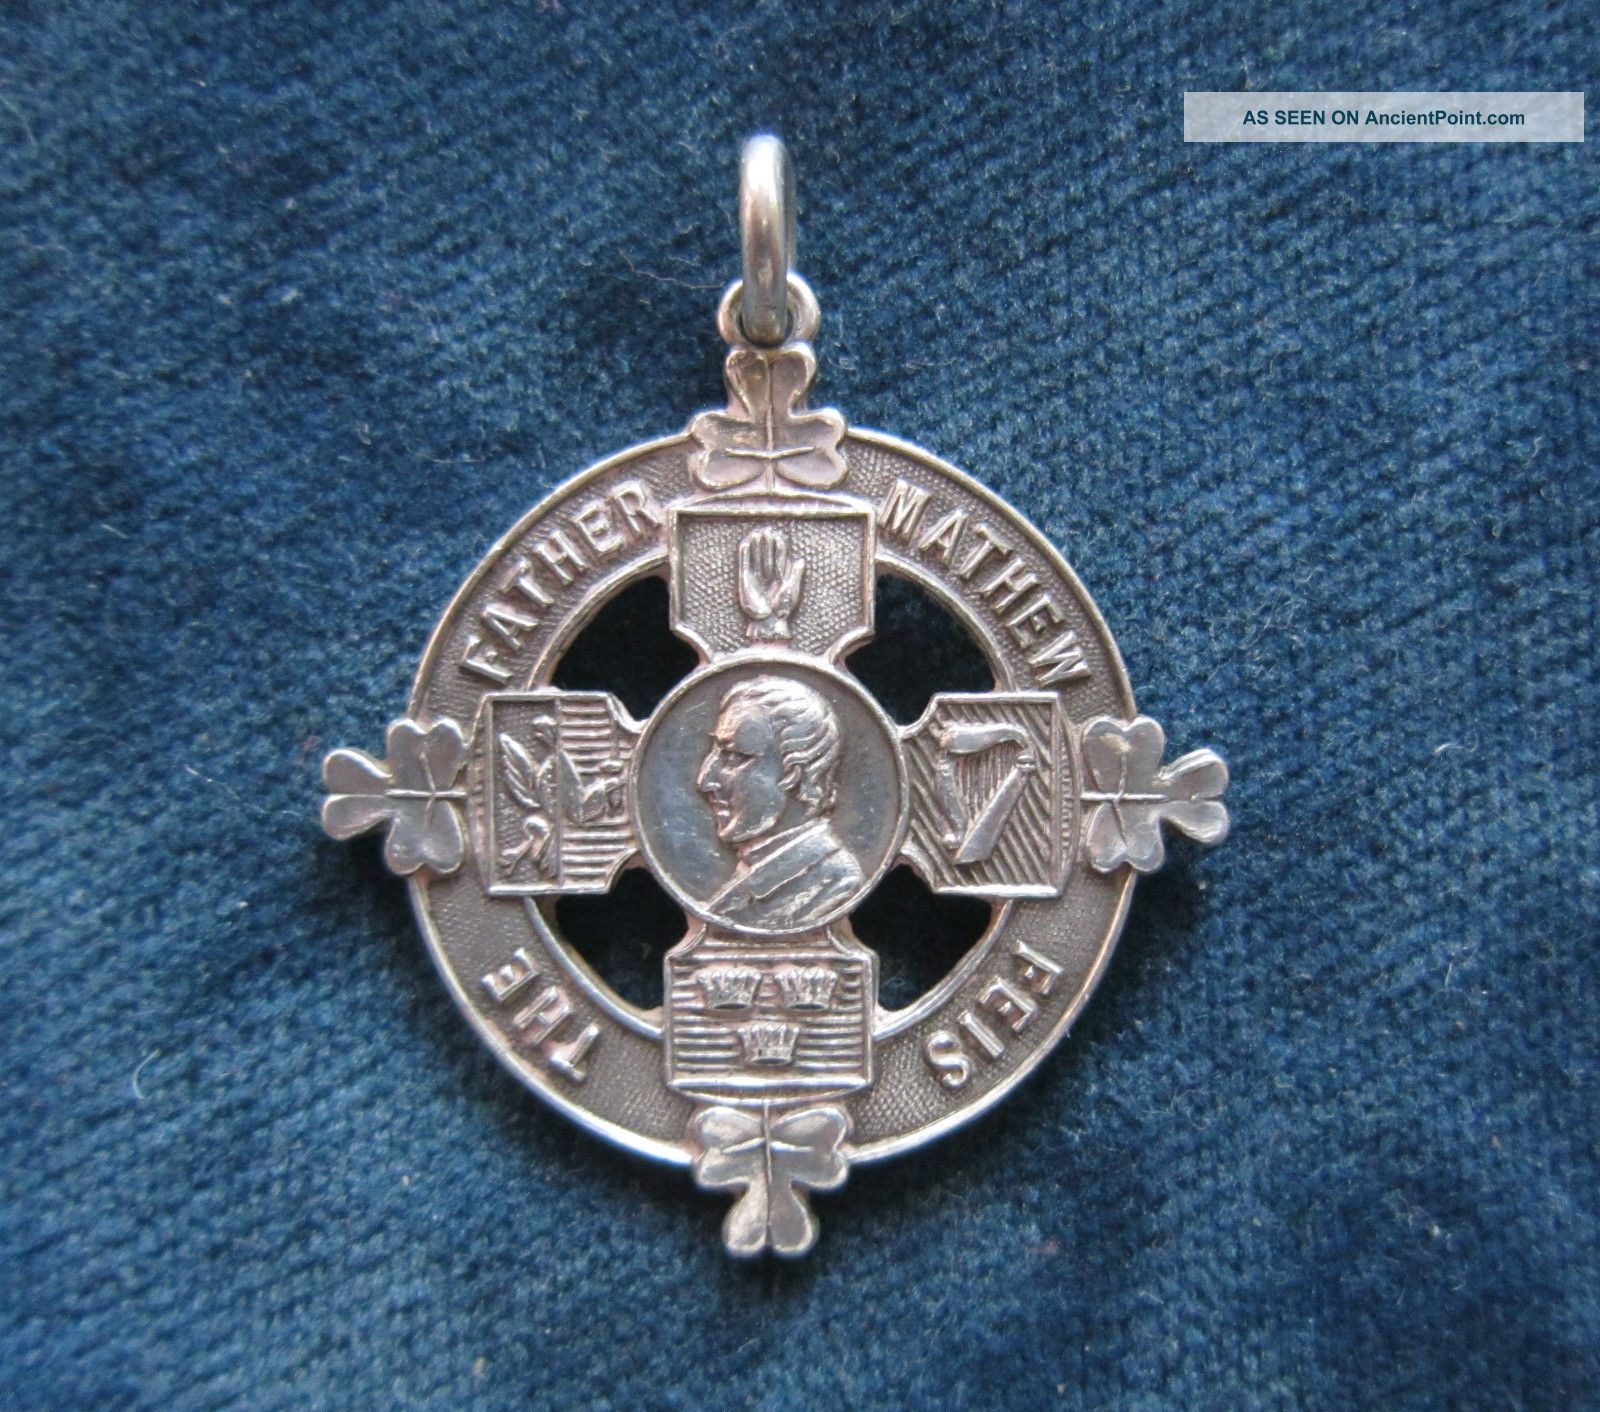 Antique Solid Silver Fob Medal - The Father Mathew Feis - Dublin 1921 Pocket Watches/ Chains/ Fobs photo